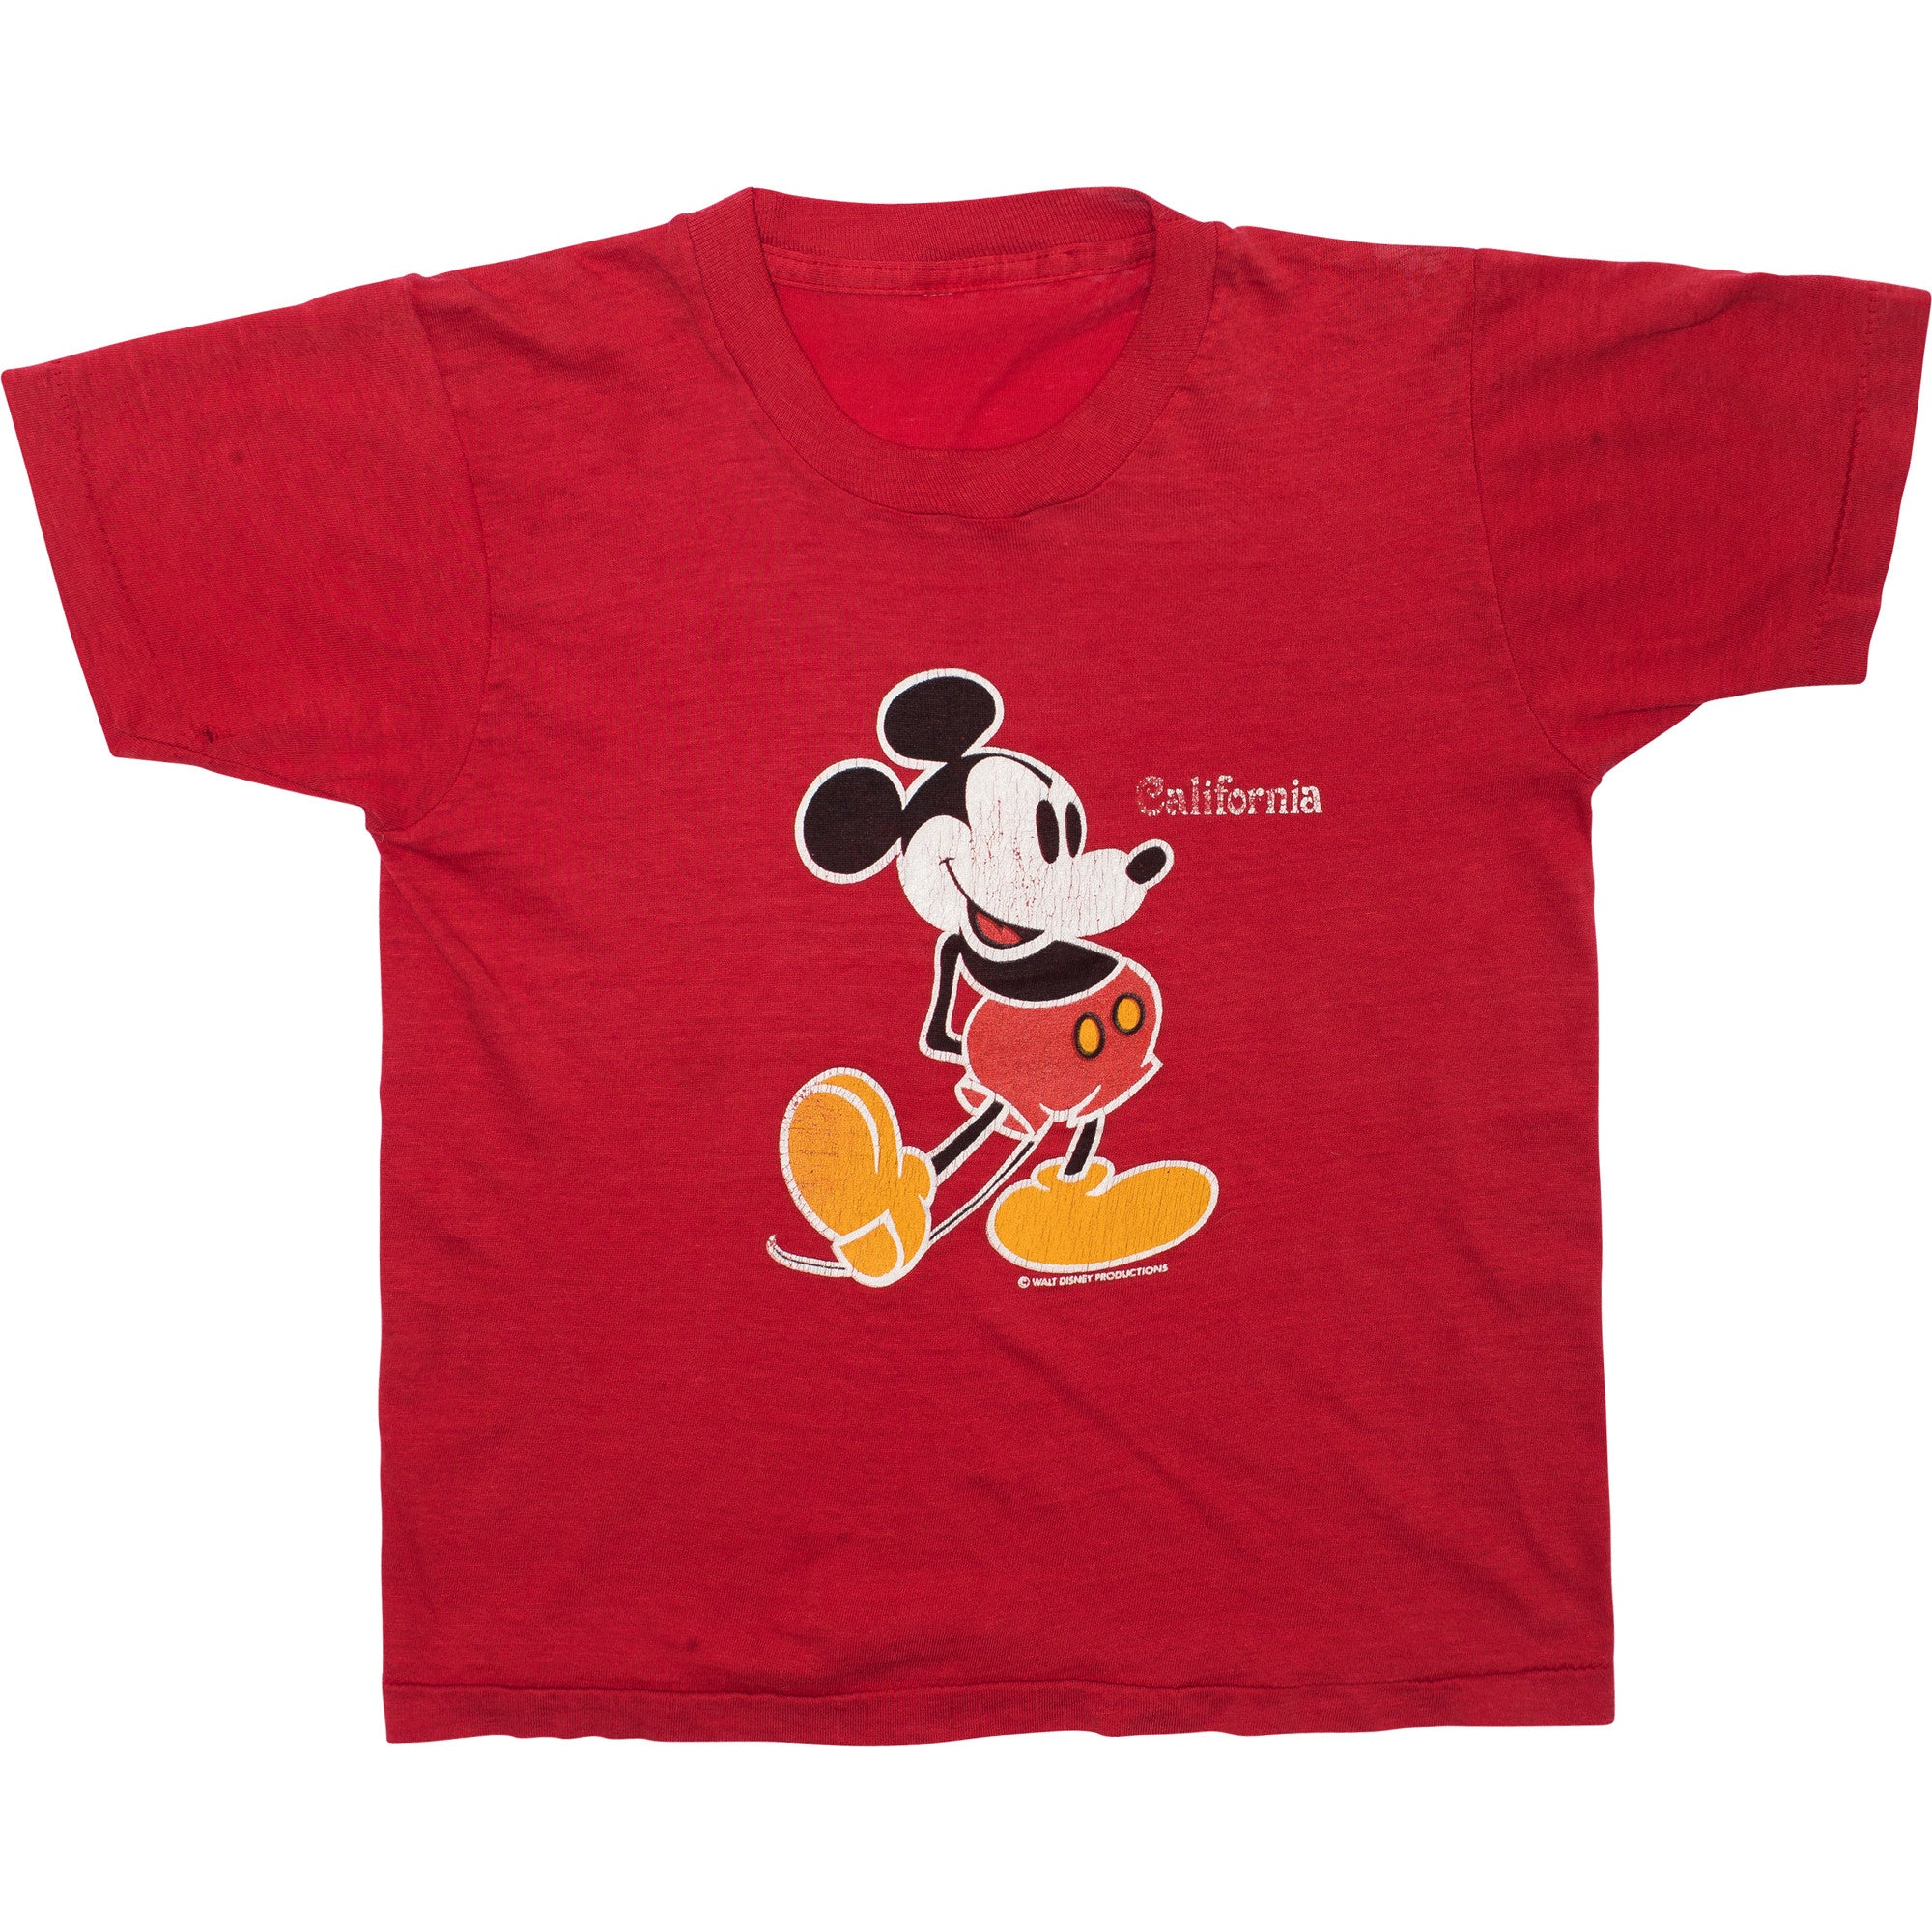 RXMANCE Mickey Mouse Vintage Tee